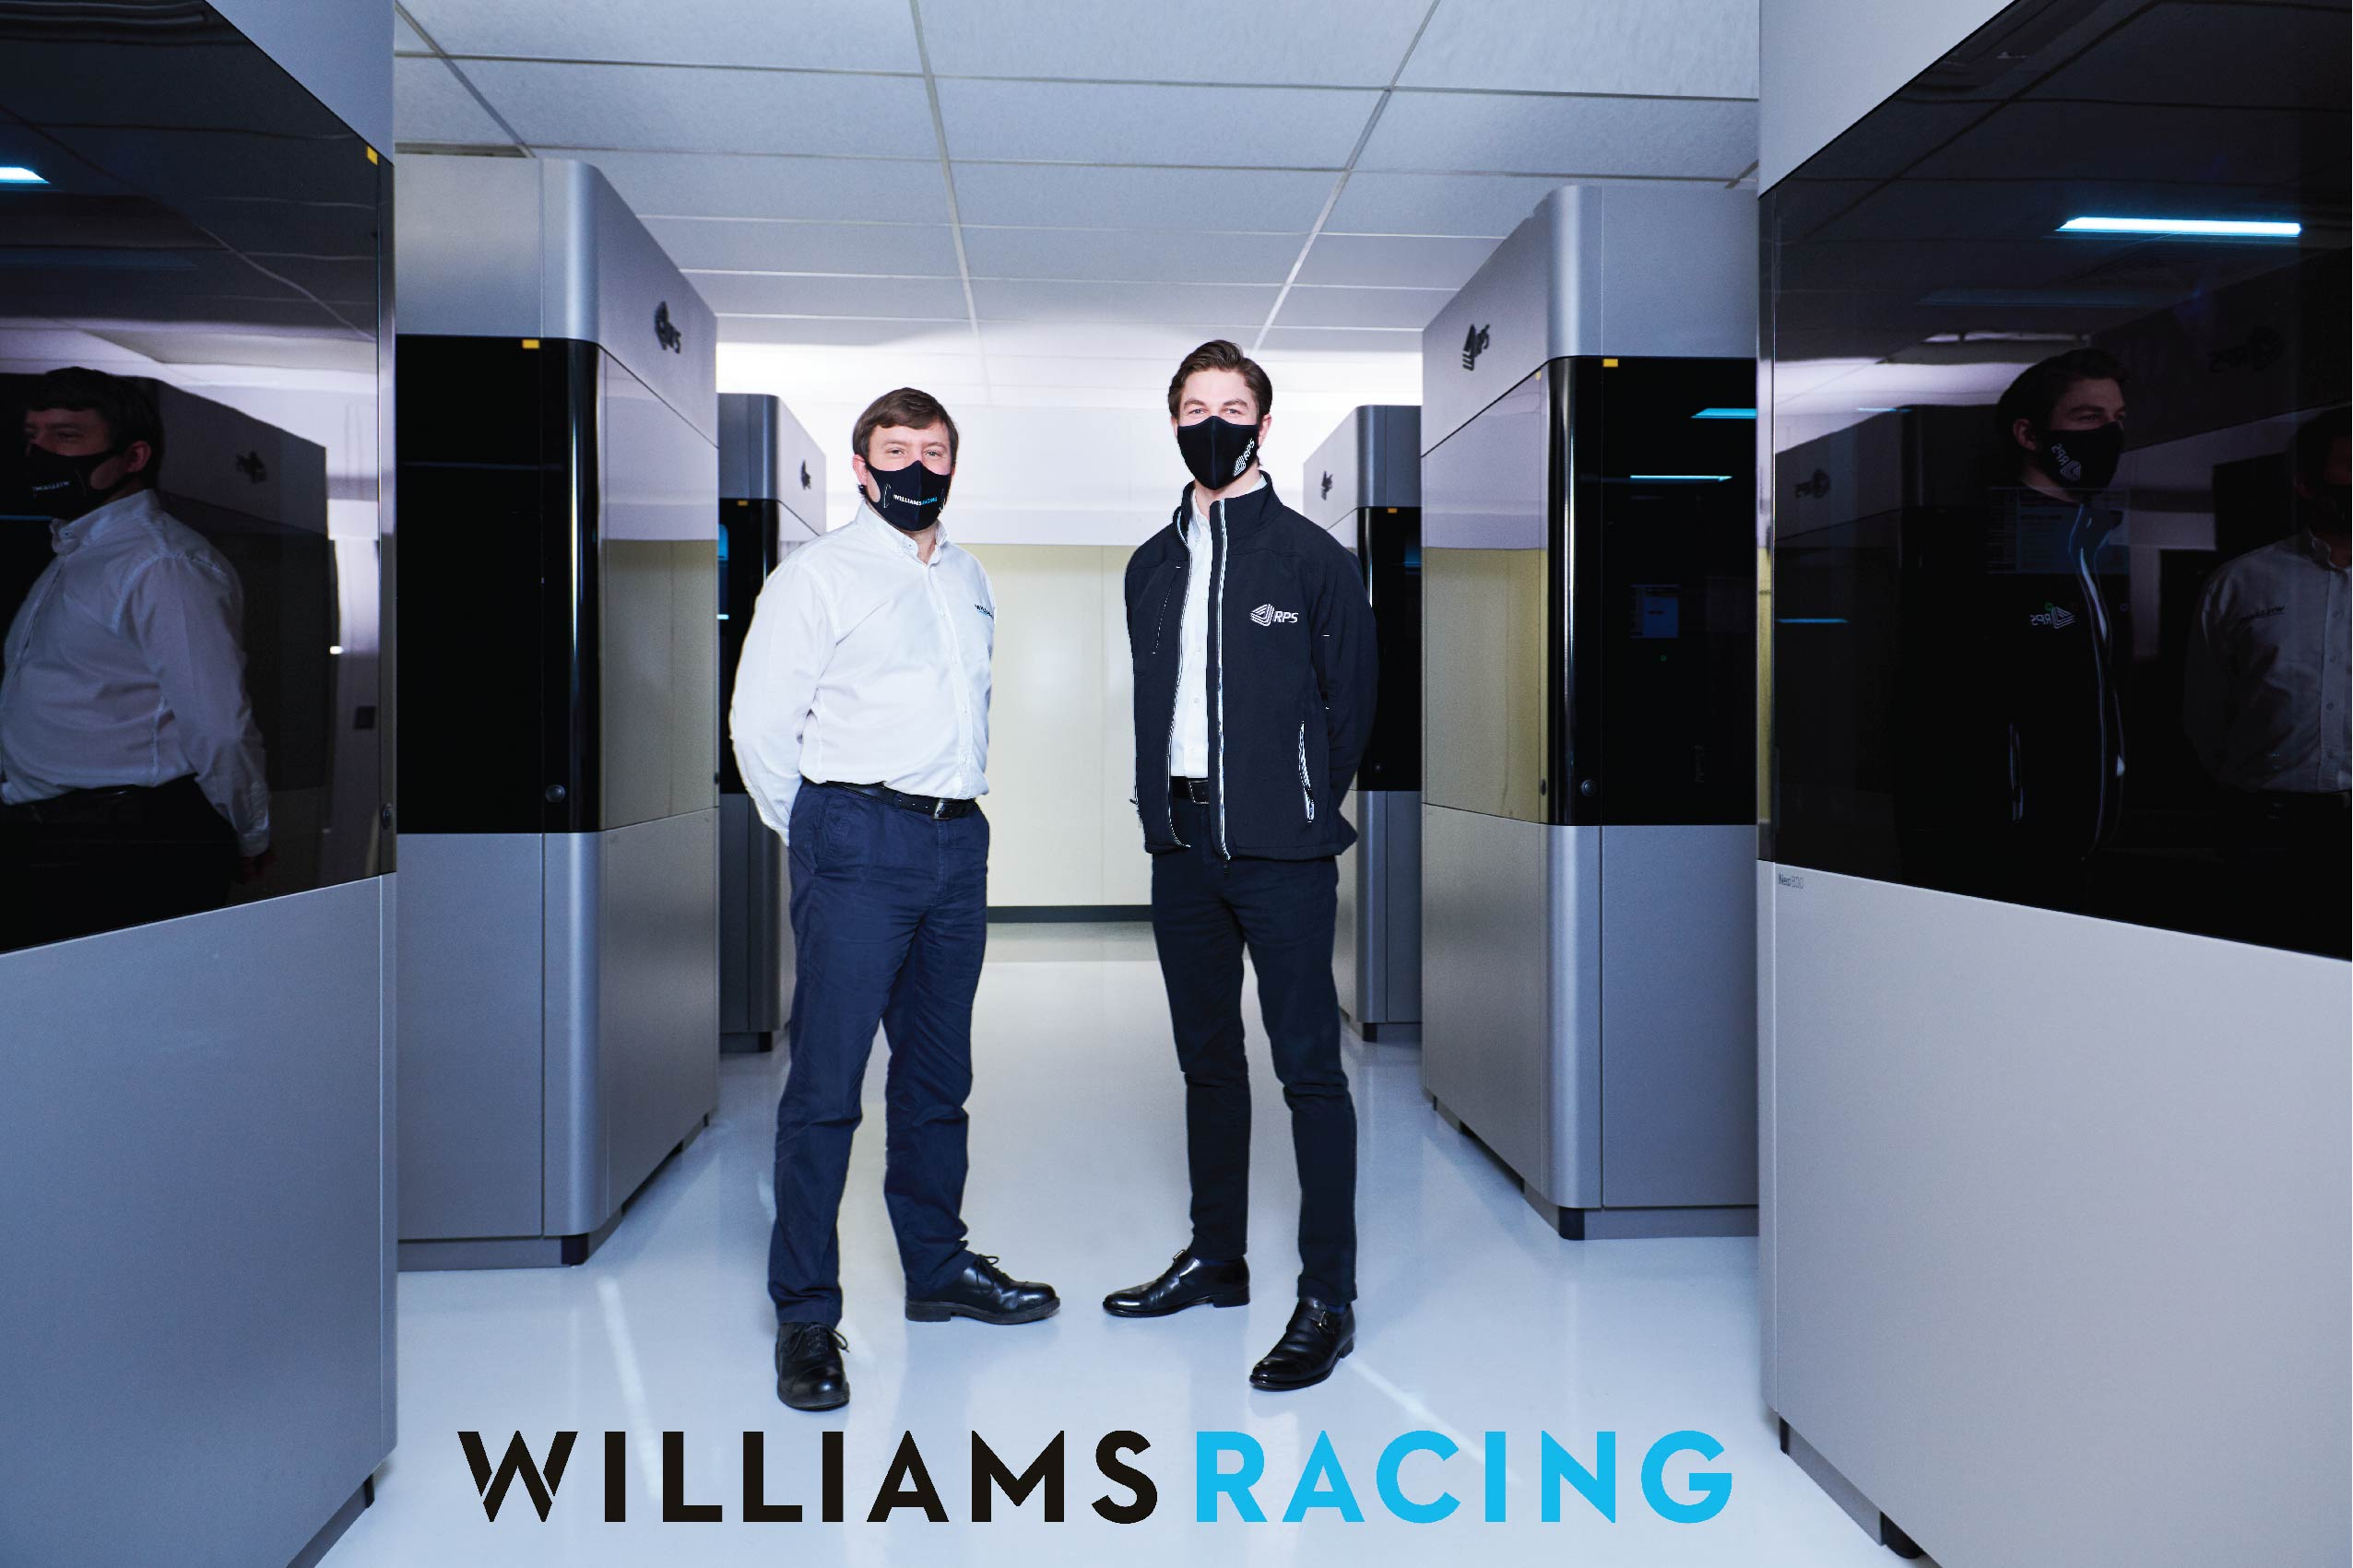 Williams Racing invest big with RPS